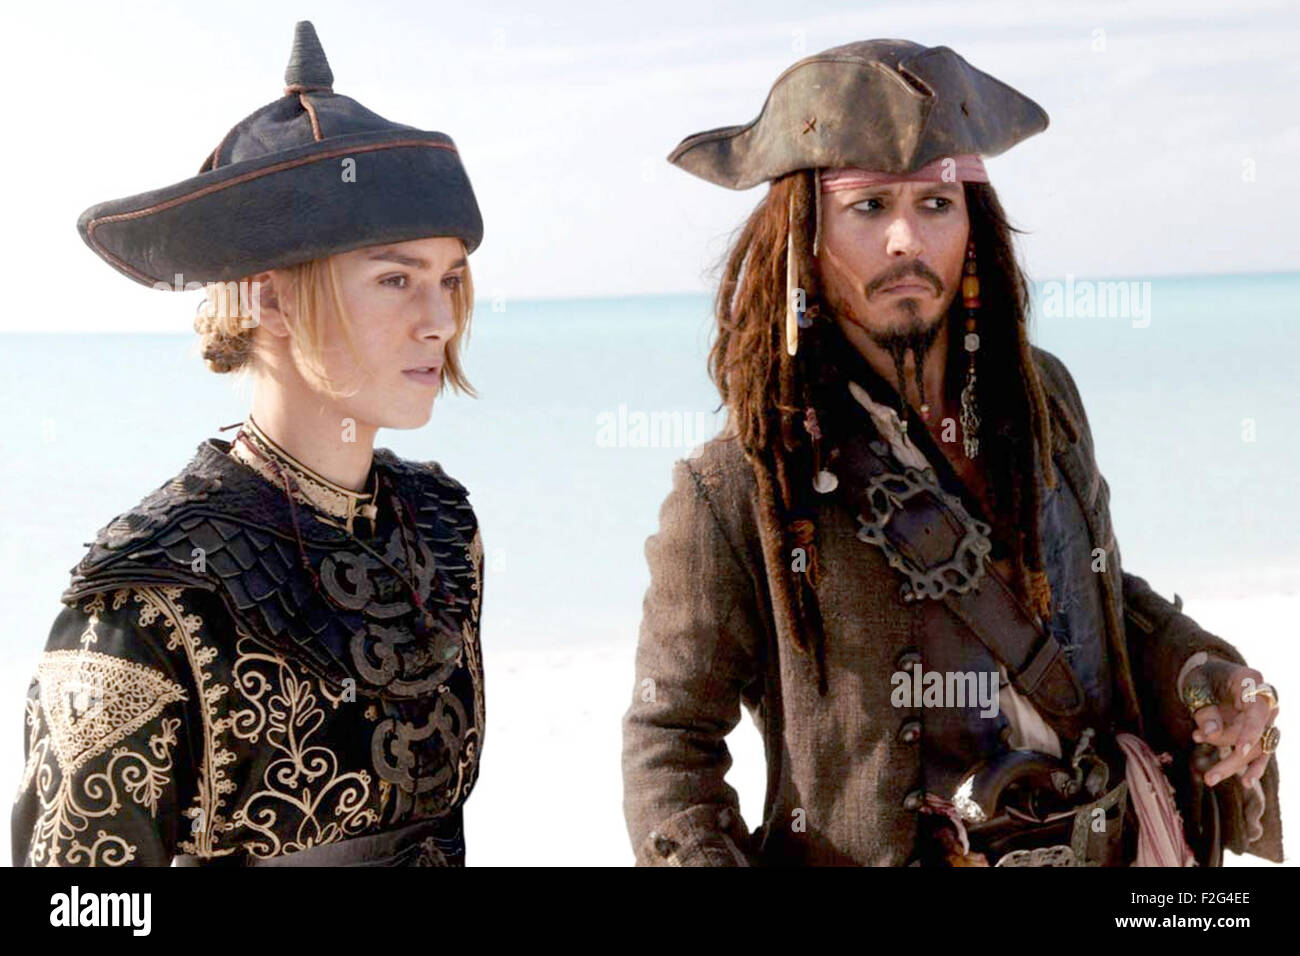 PIRATES OF THE CARRIBBEAN: AT WORLD'S END 2007 film with Keira Knightley and Johnny Depp - Stock Image